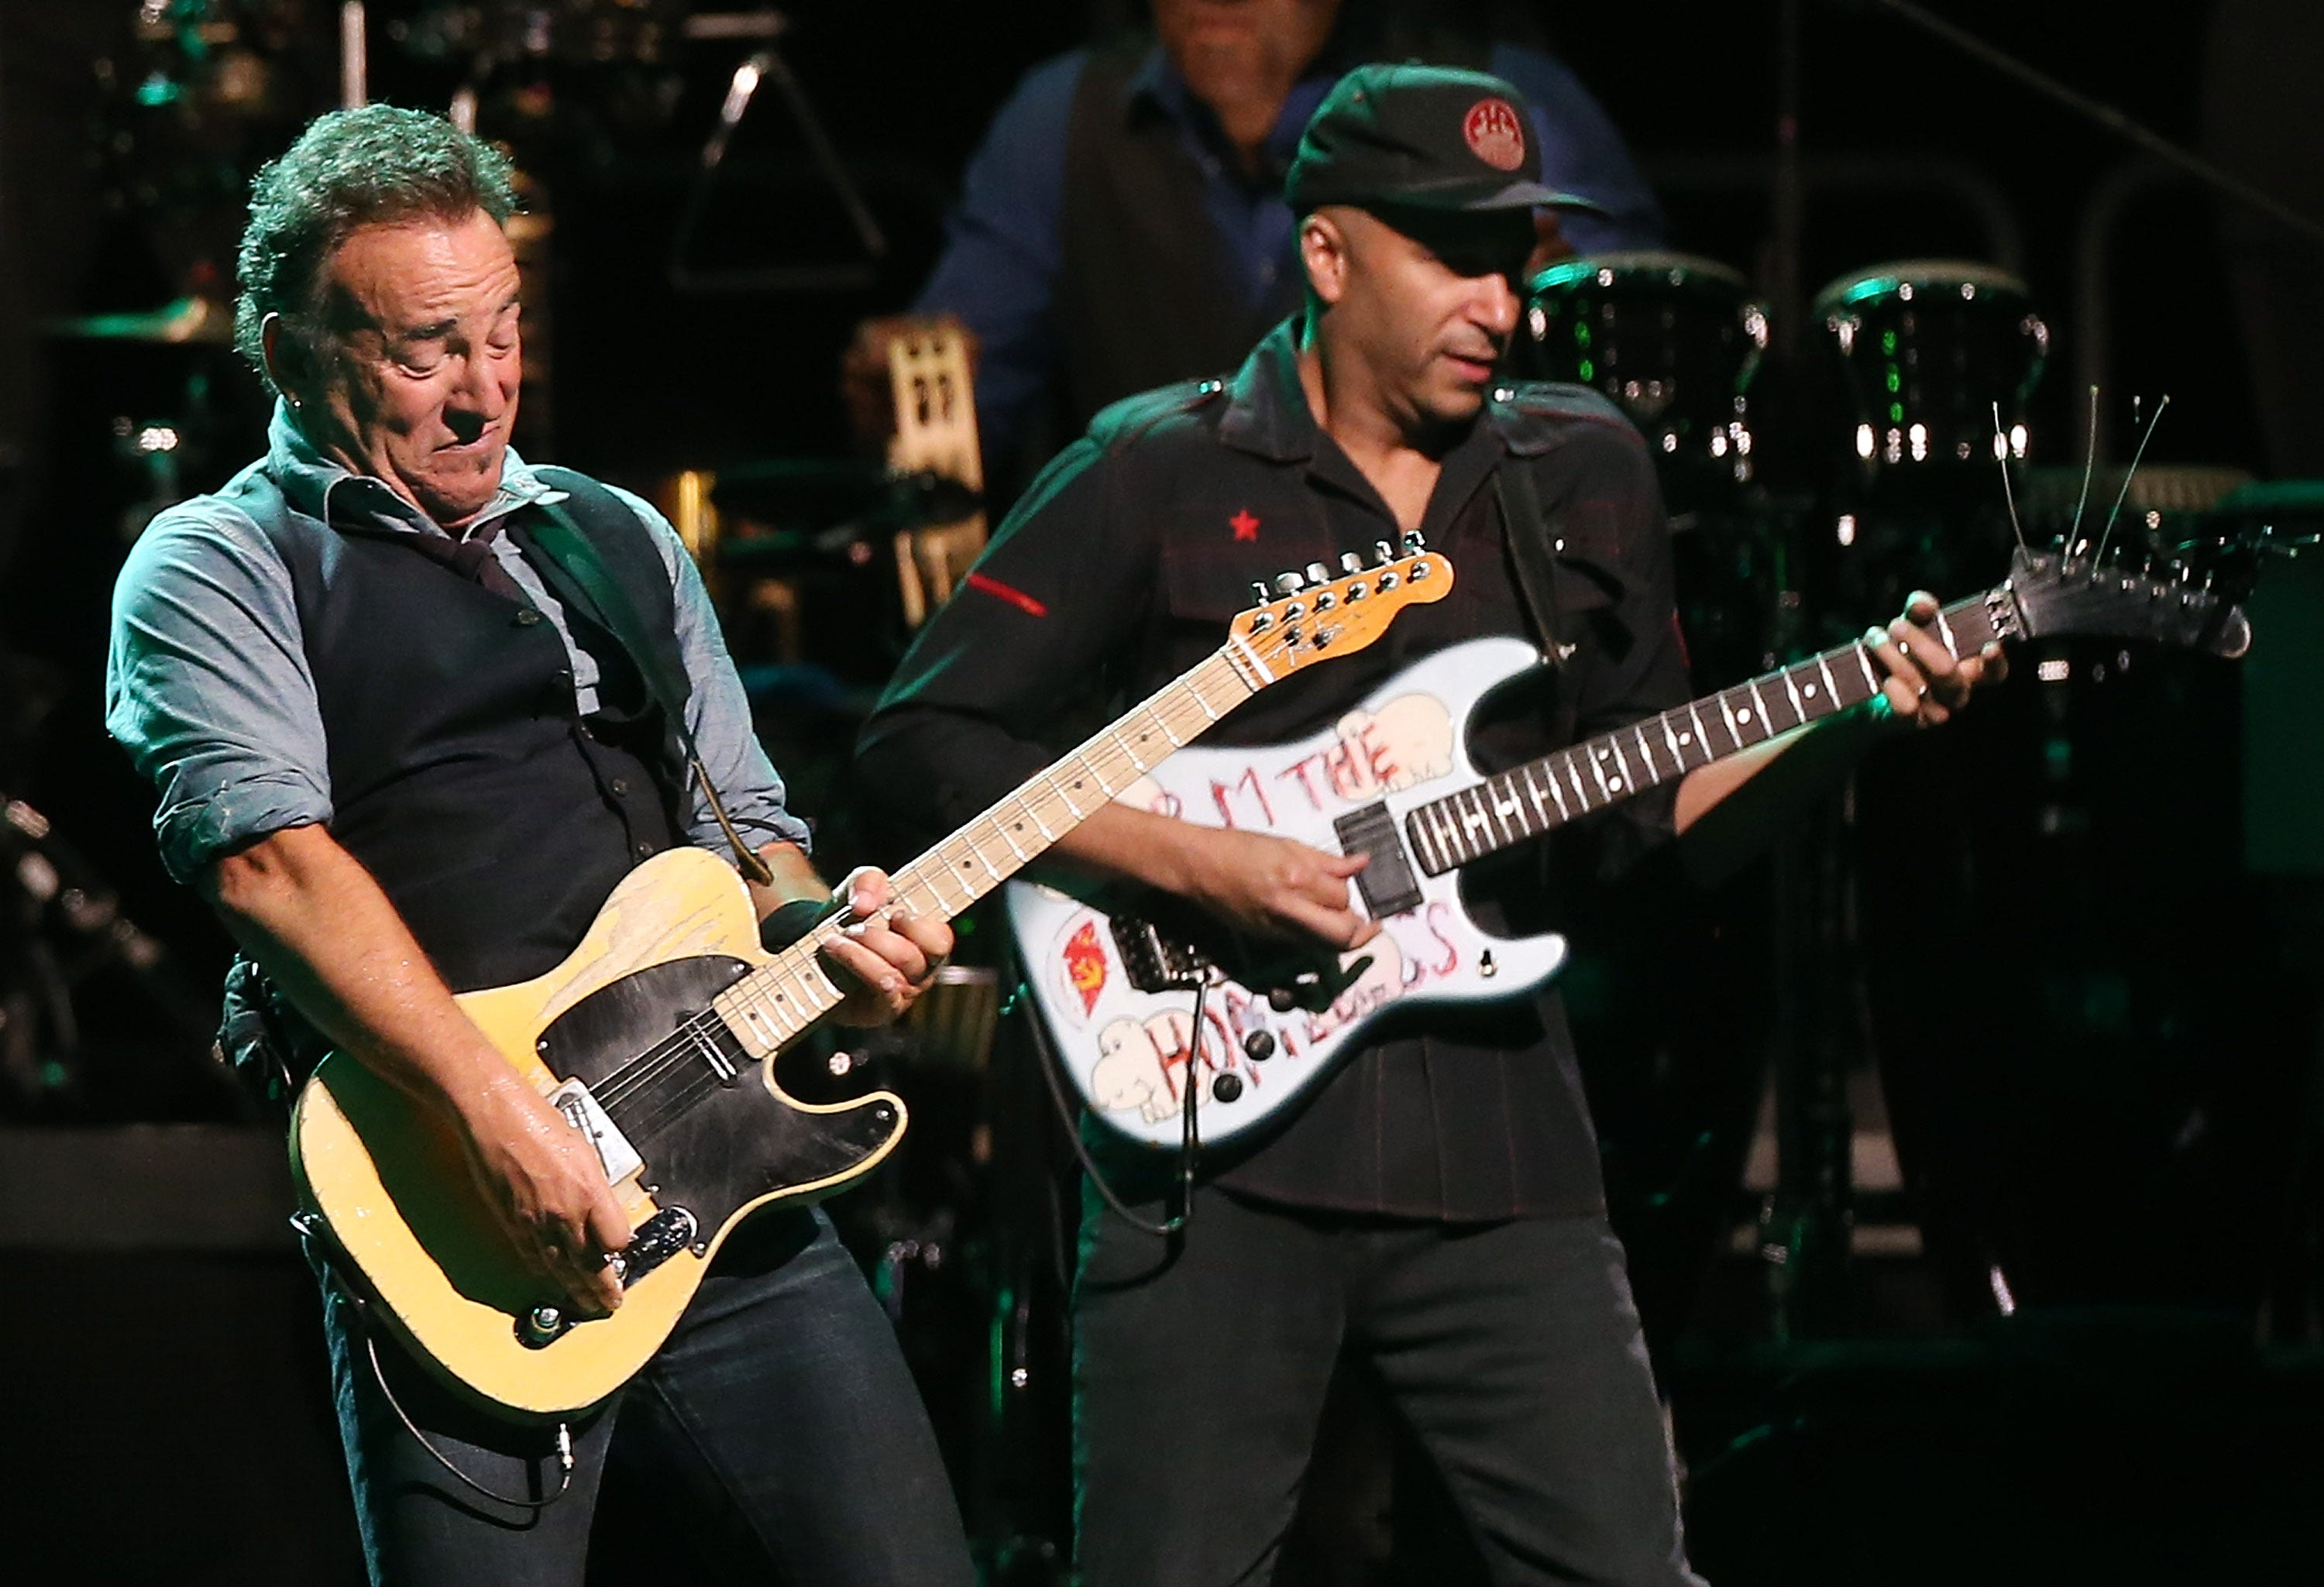 Here s how Bruce Springsteen, Eddie Vedder and Tom Morello covered  Highway to Hell